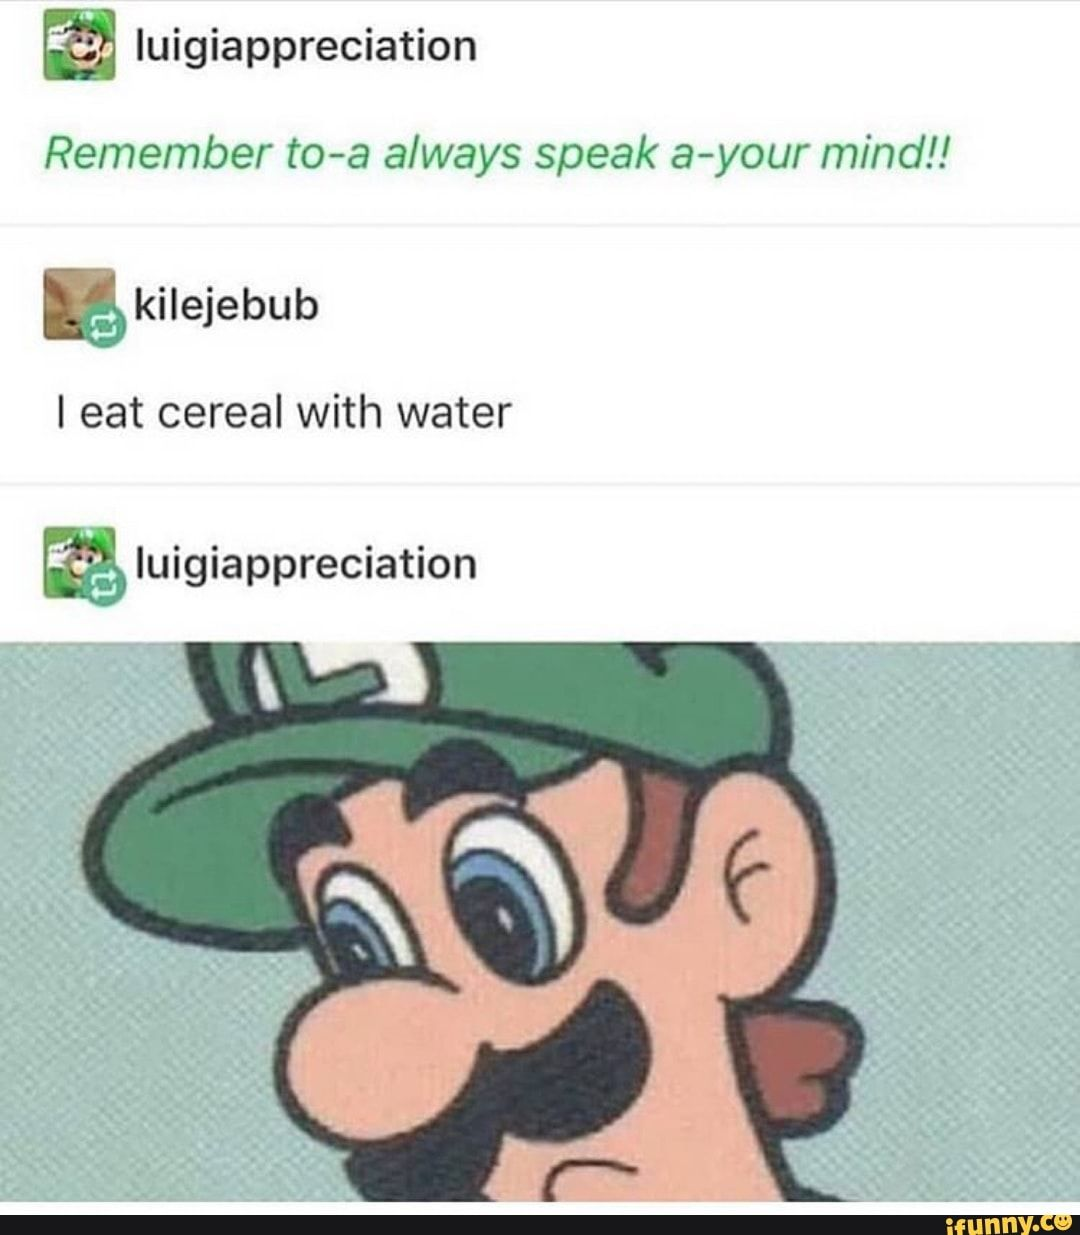 Remember To-a Always Speak A-your Minc!!! I Eat Cereal